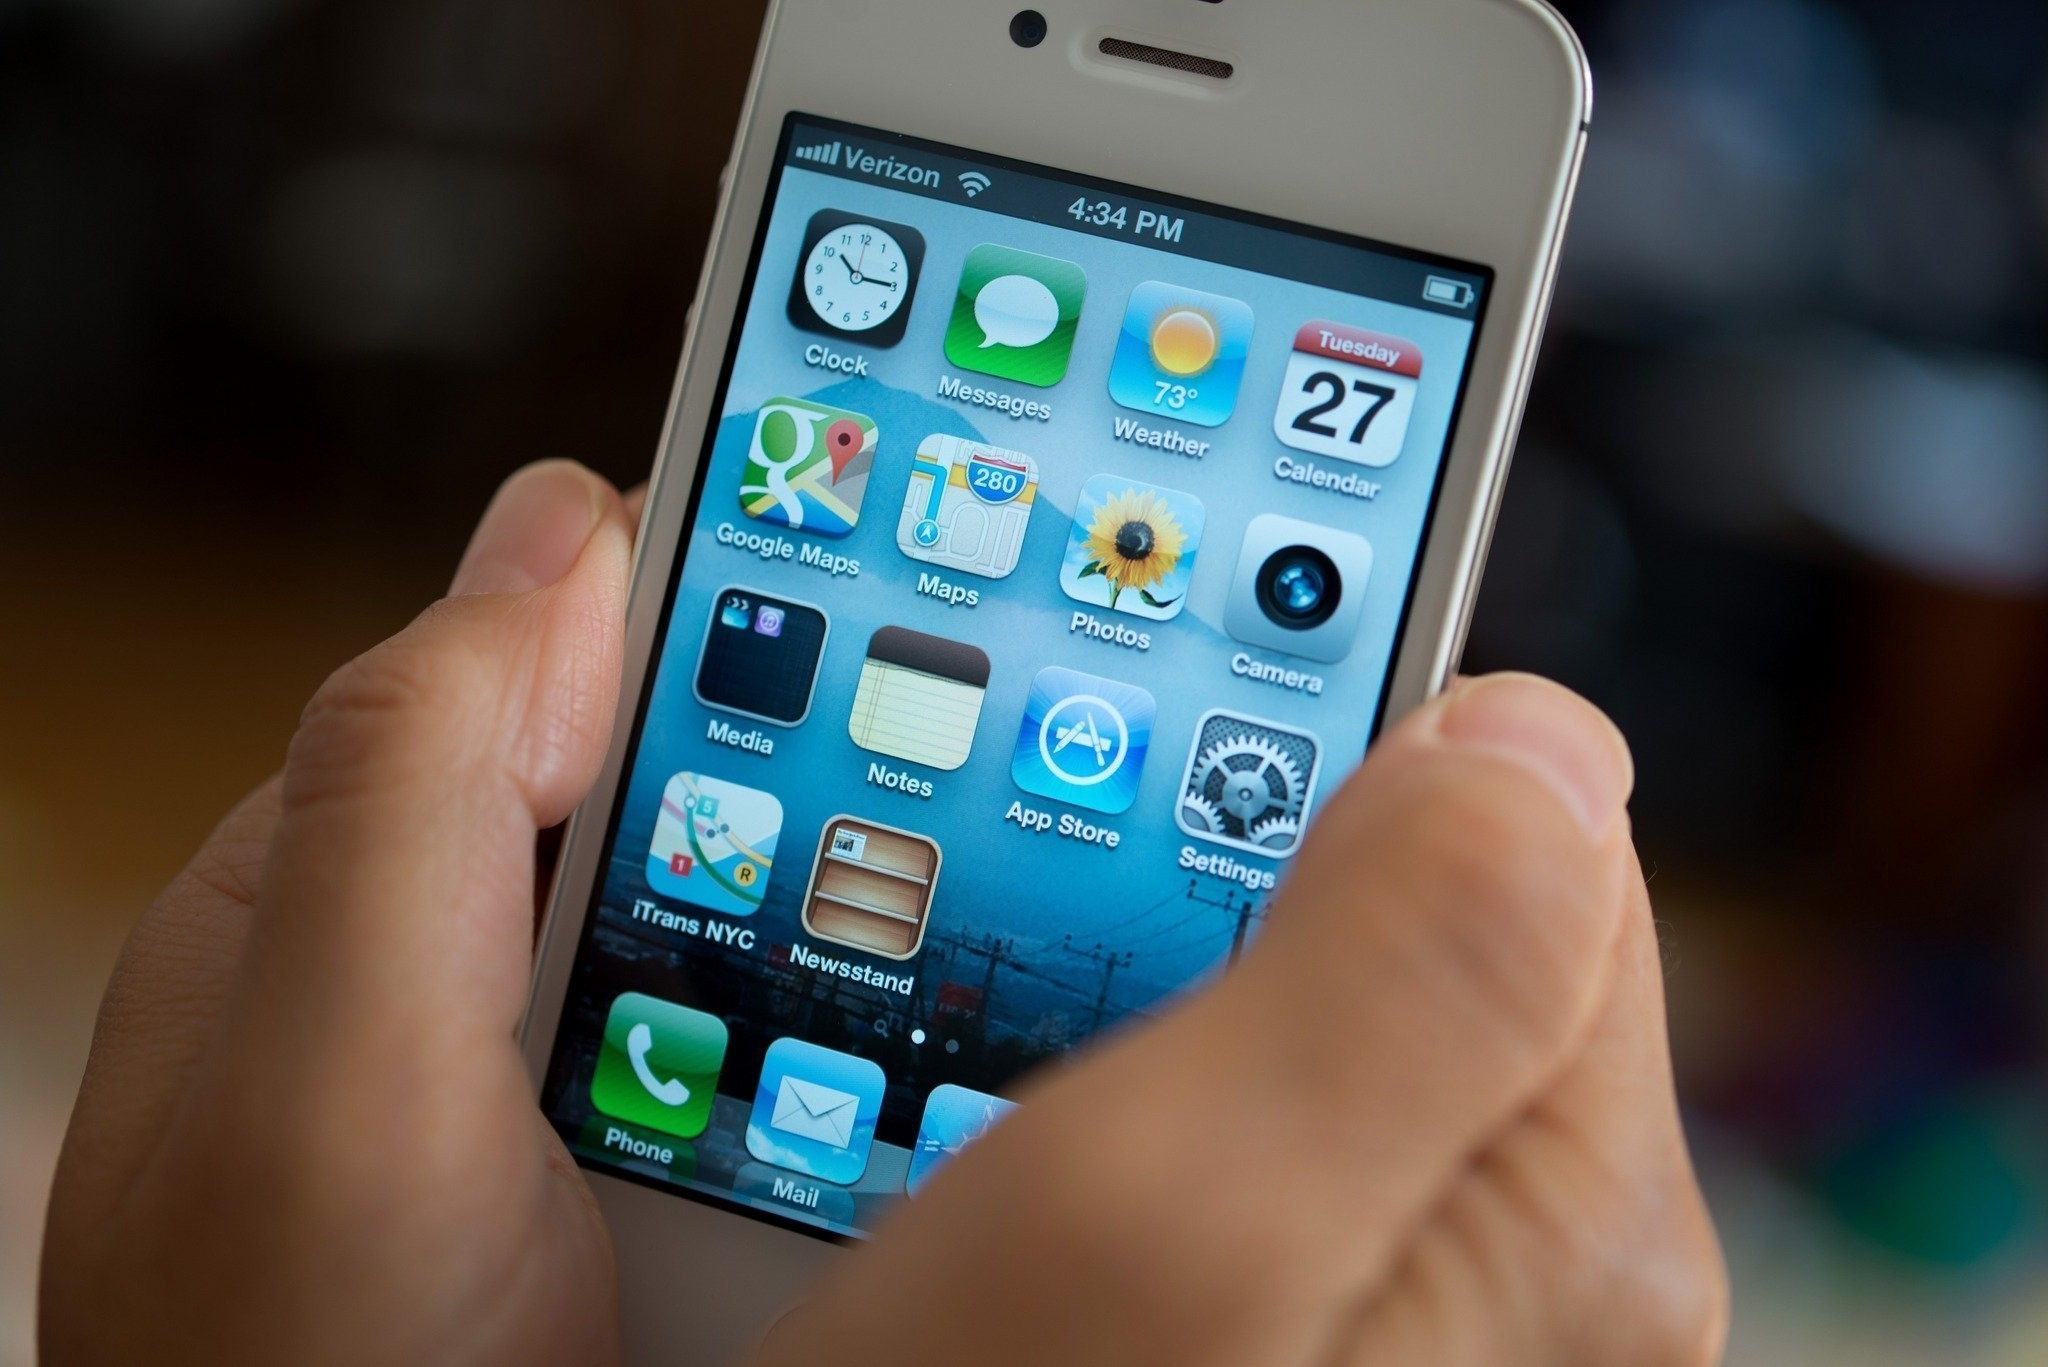 Fed up with robocalls, Portland man sues to make phone